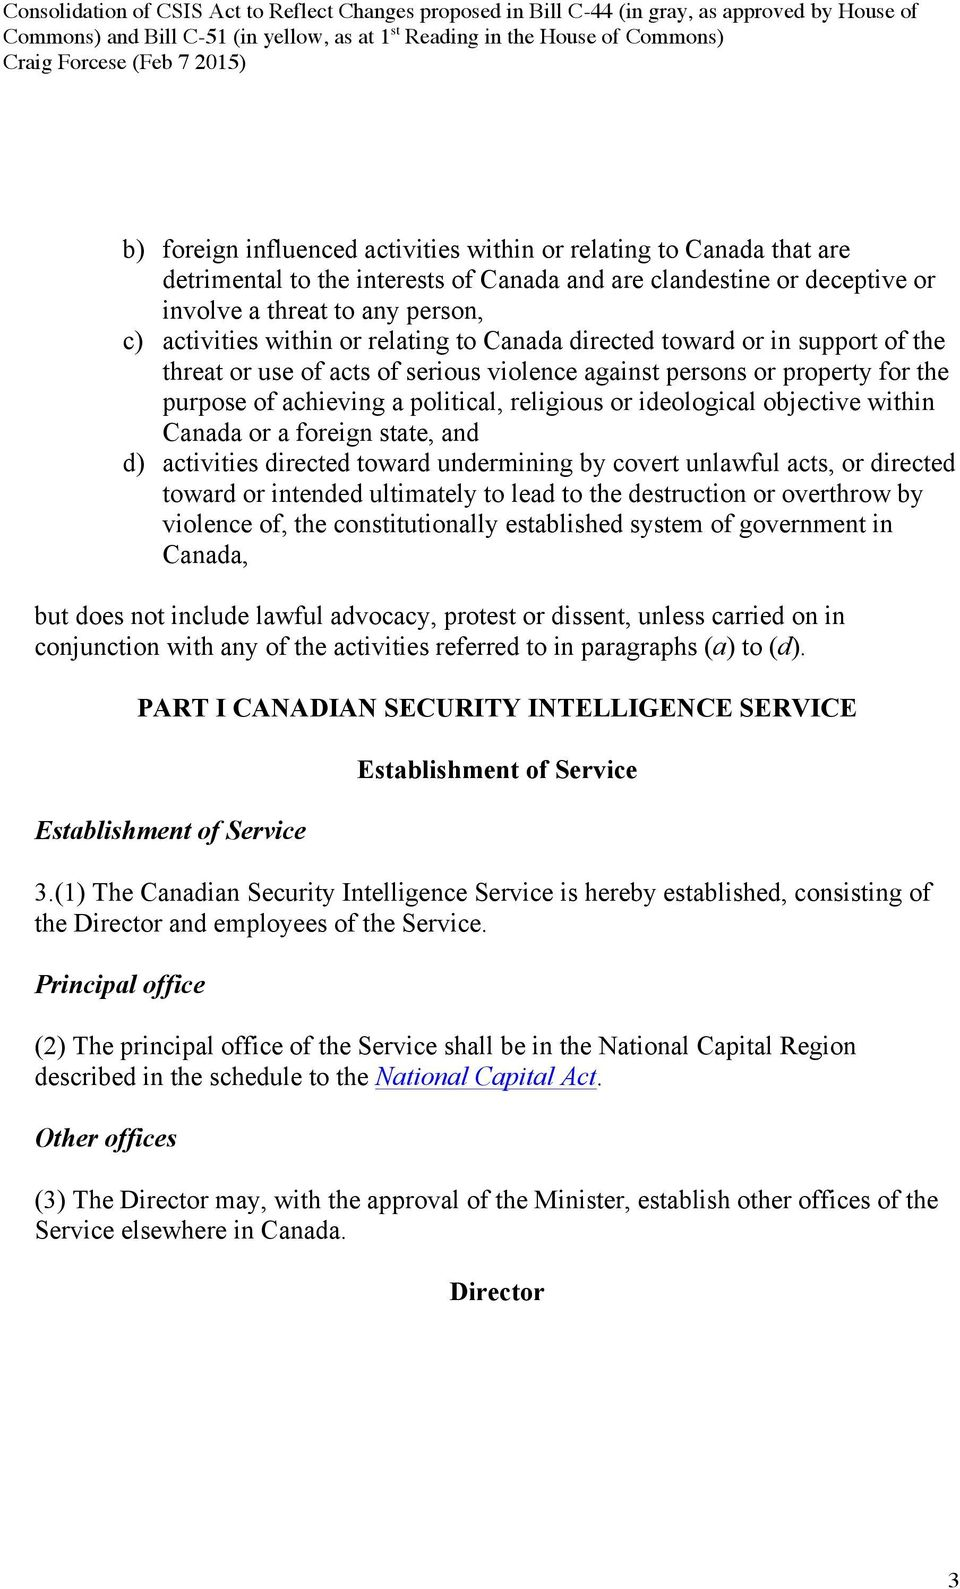 objective within Canada or a foreign state, and d) activities directed toward undermining by covert unlawful acts, or directed toward or intended ultimately to lead to the destruction or overthrow by